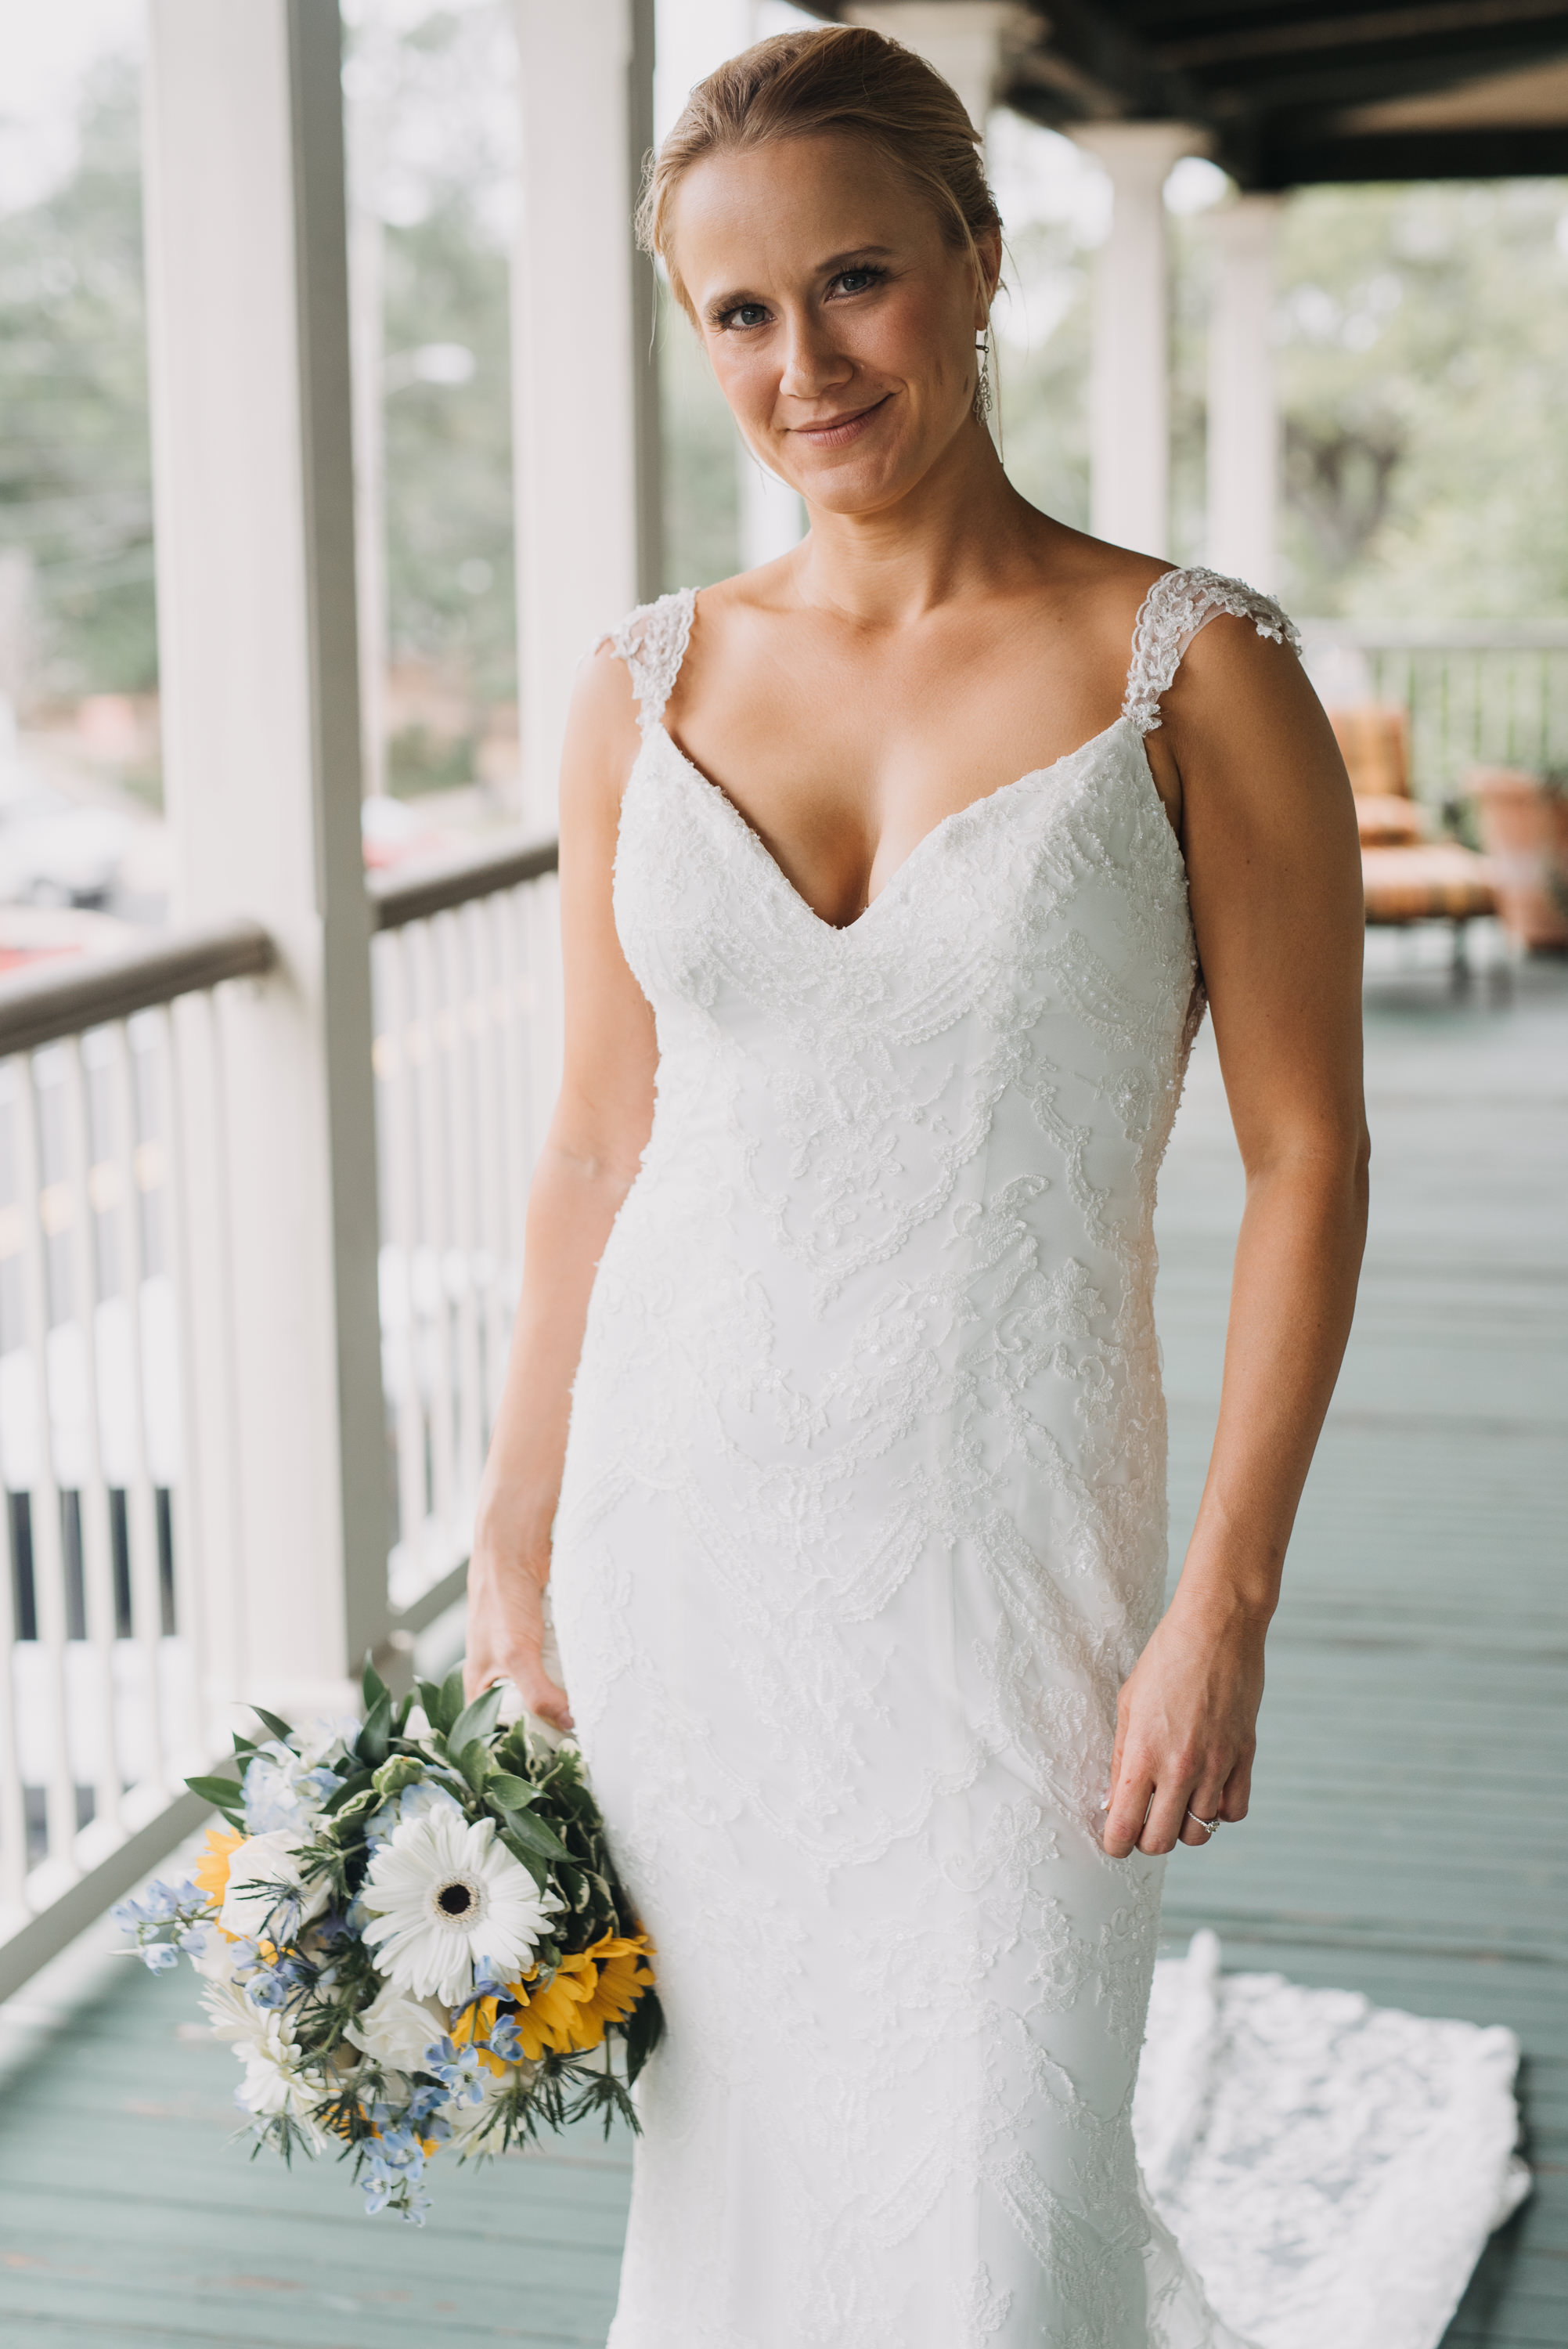 Elegant Summer Downtown Pensacola Wedding At The Lee House Paul